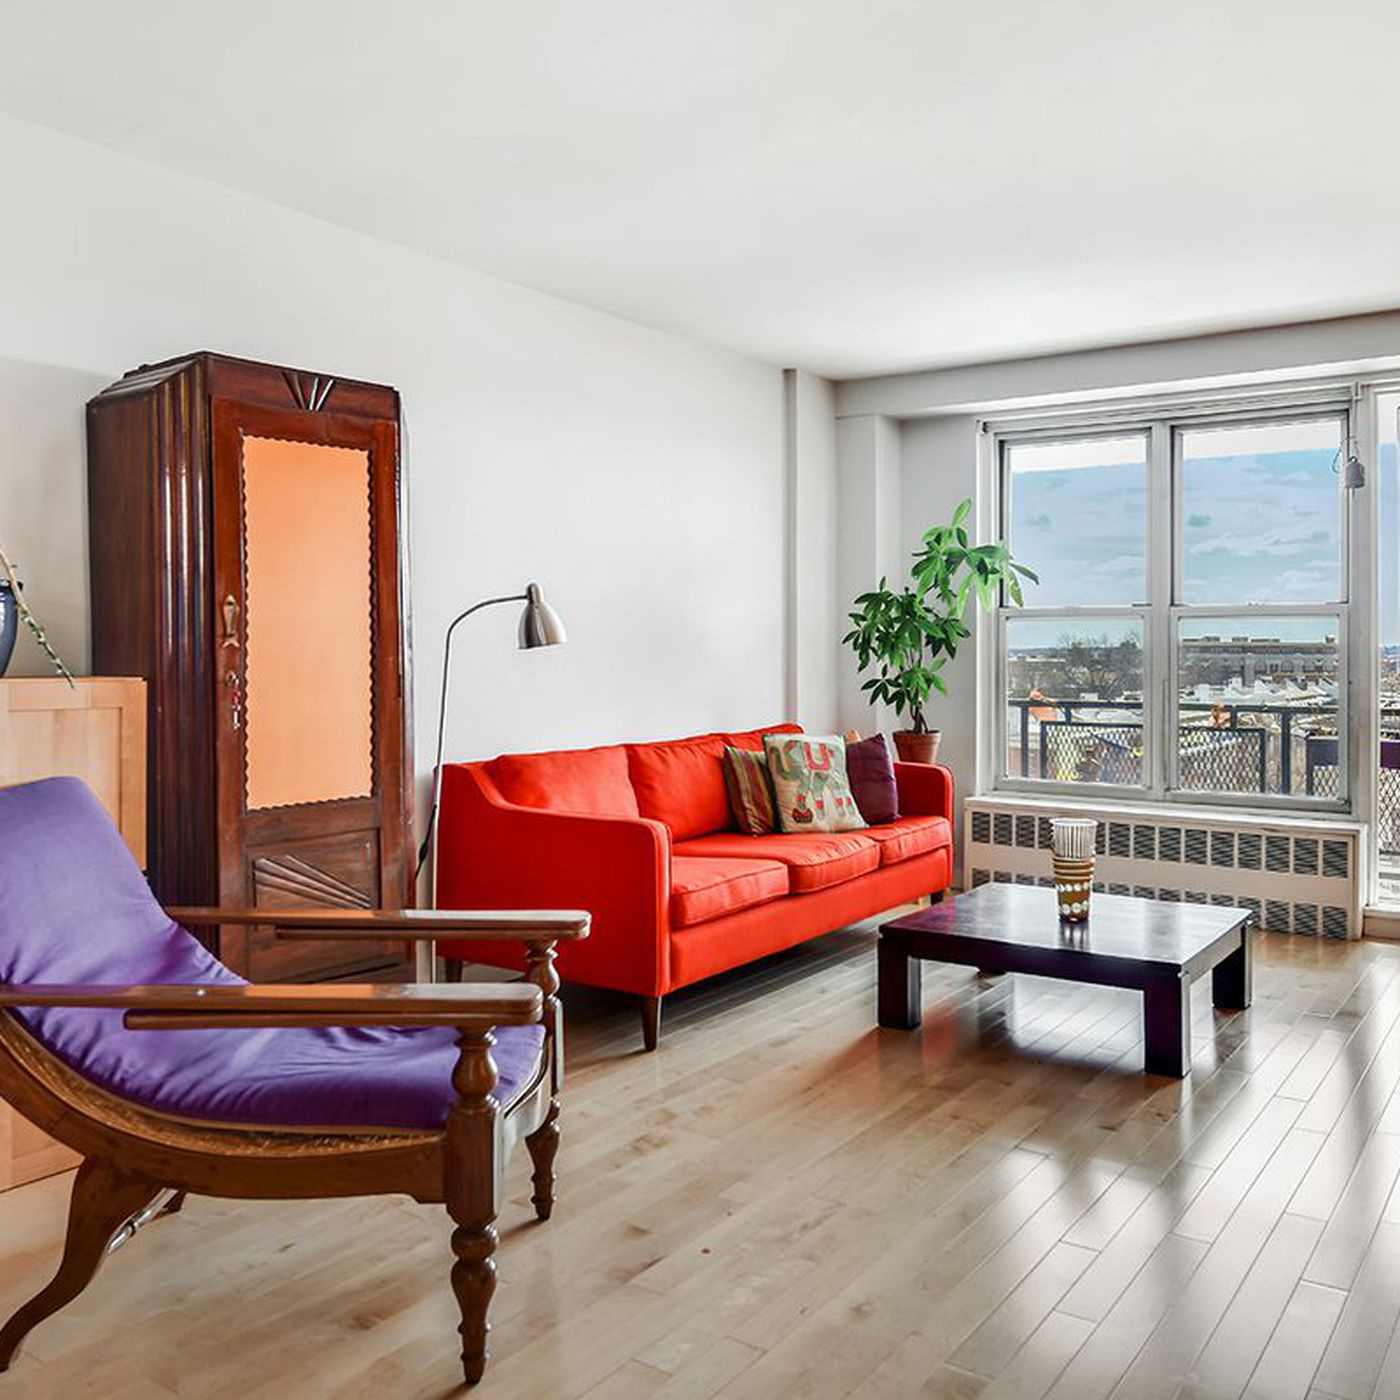 Affordable NYC three bedrooms for sale in every borough Curbed NY